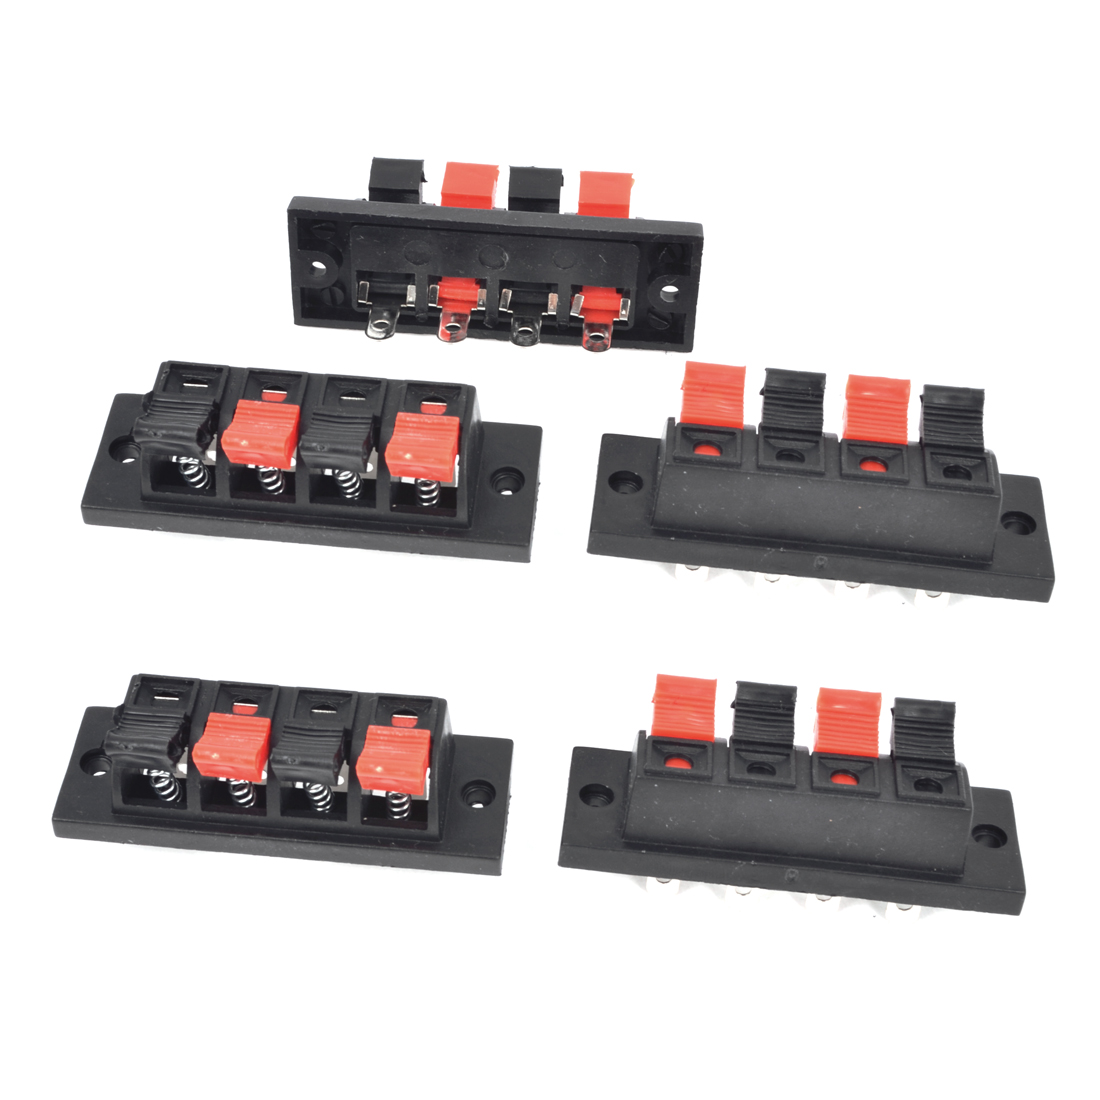 5Pcs 4 Way Large Stereo Speaker Plate Terminal Strip Push Release Connector Block